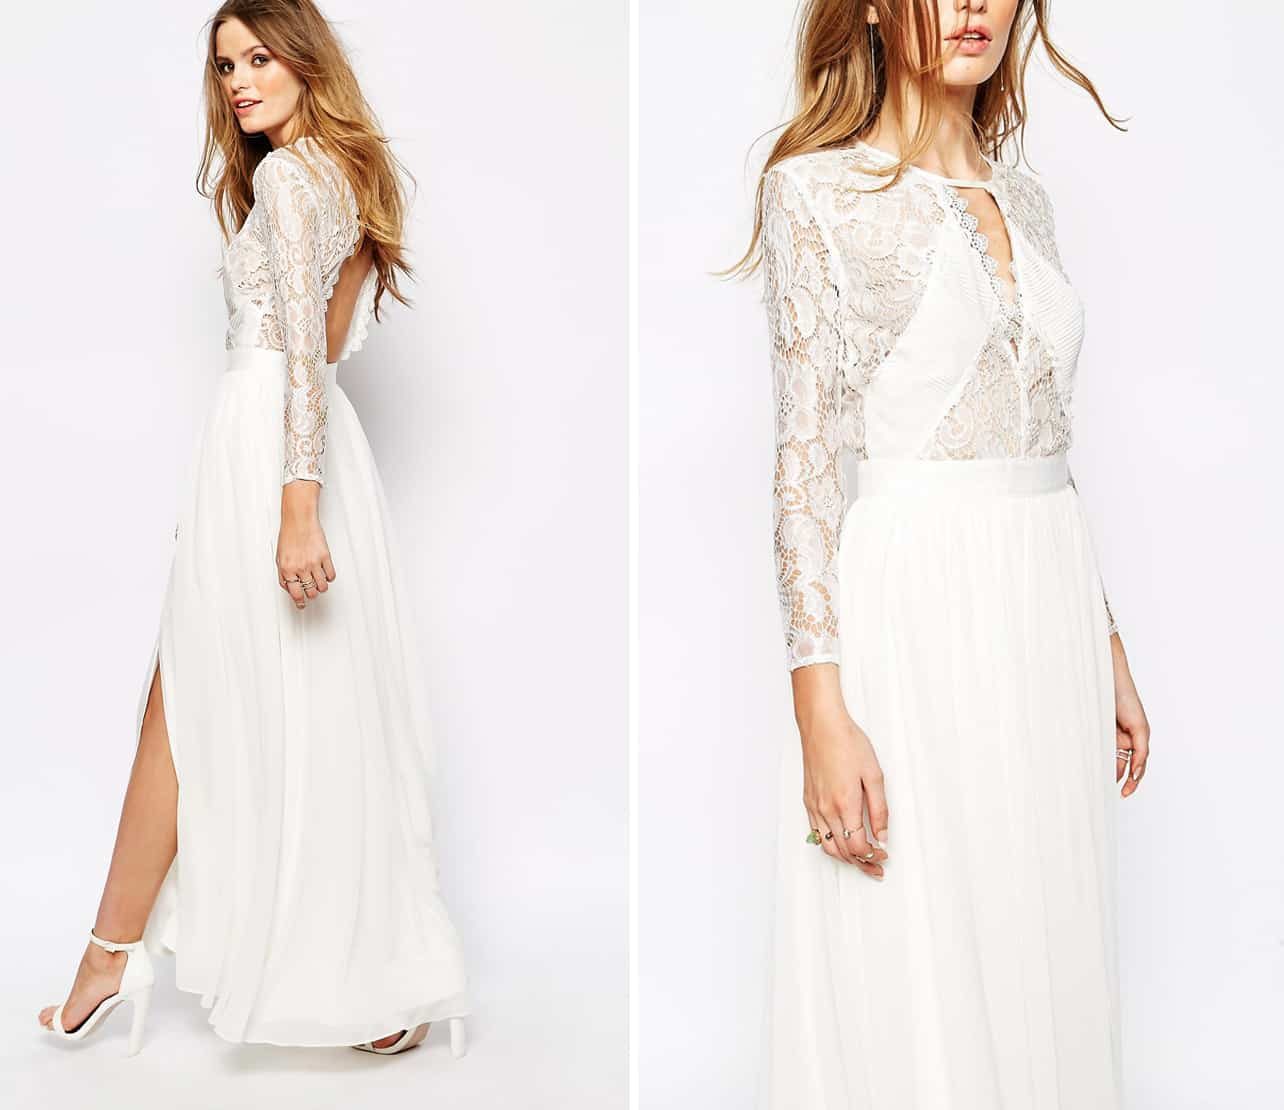 October's Top 5 Wedding Dresses Under $1000